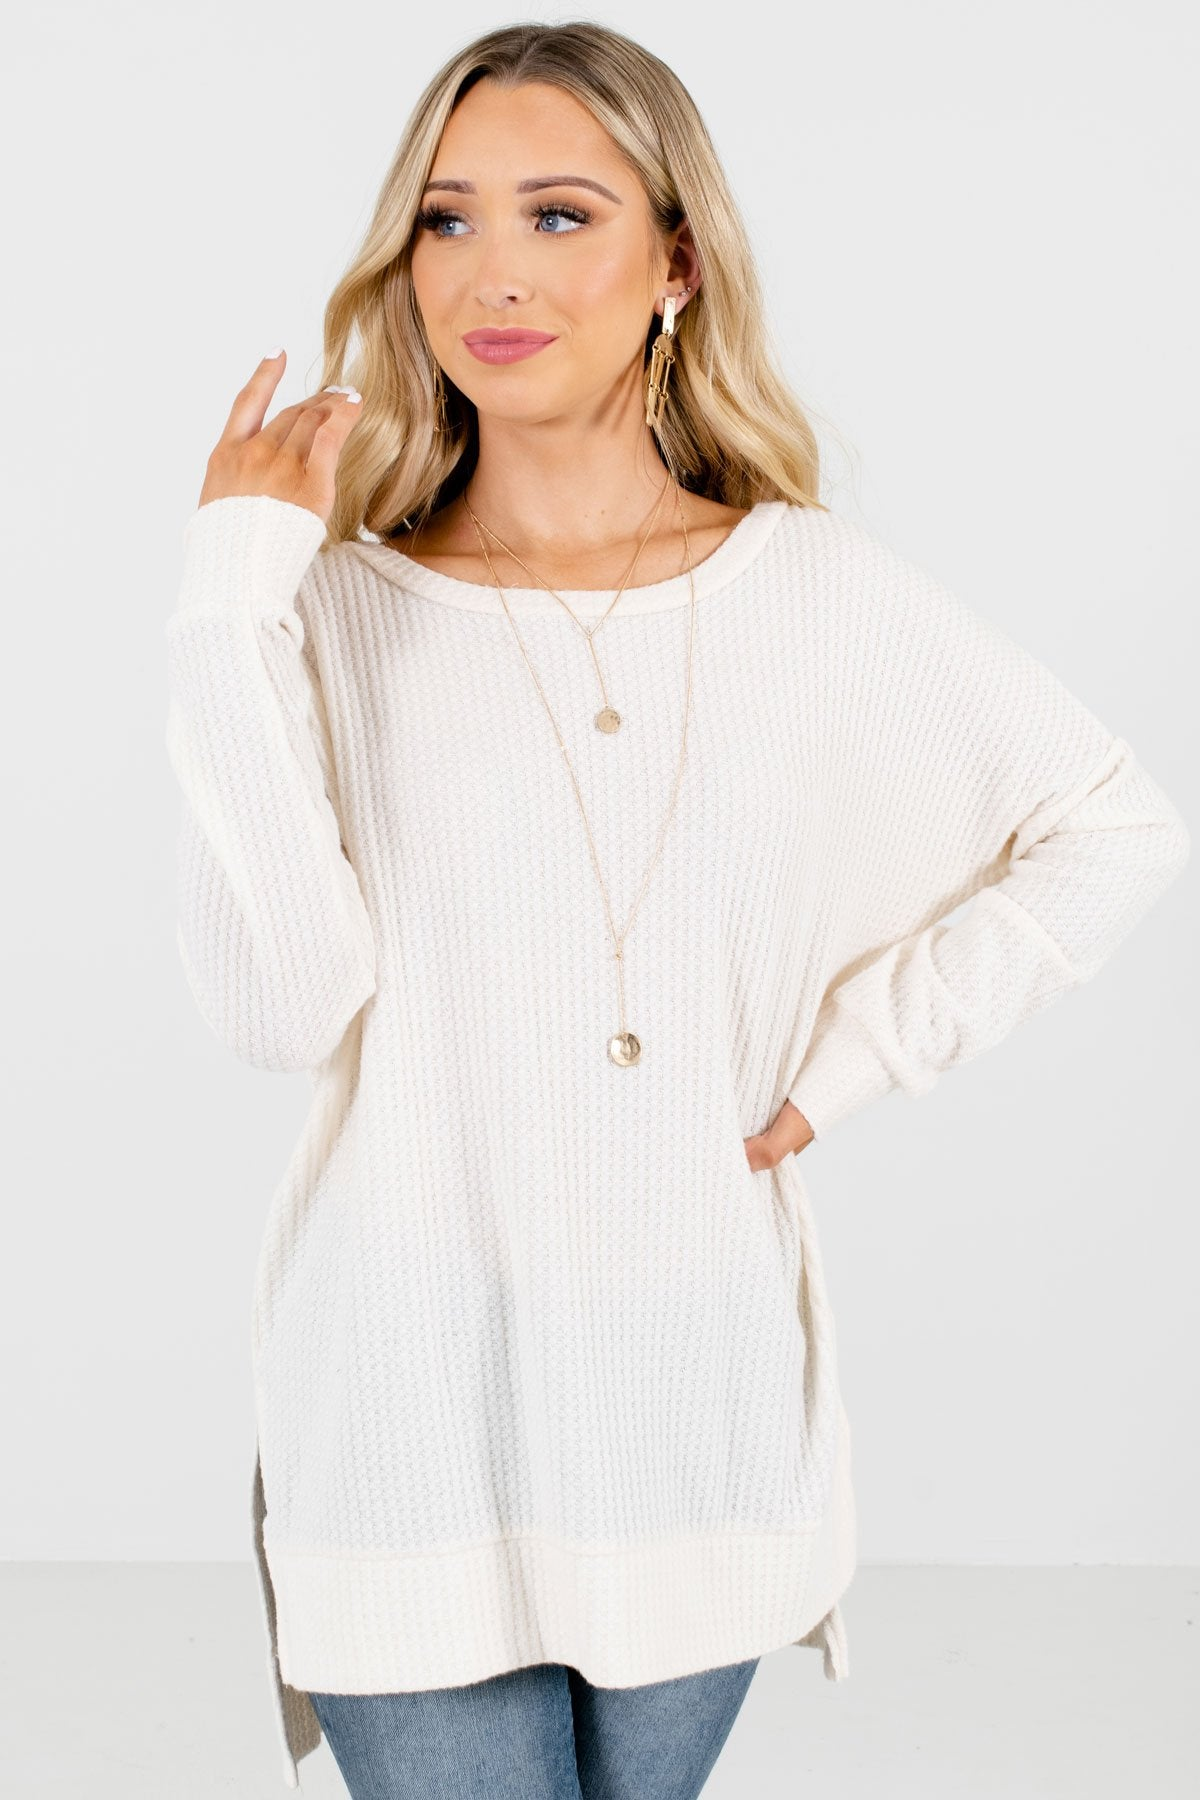 Cream High-Quality Waffle Knit Material Boutique Tops for Women